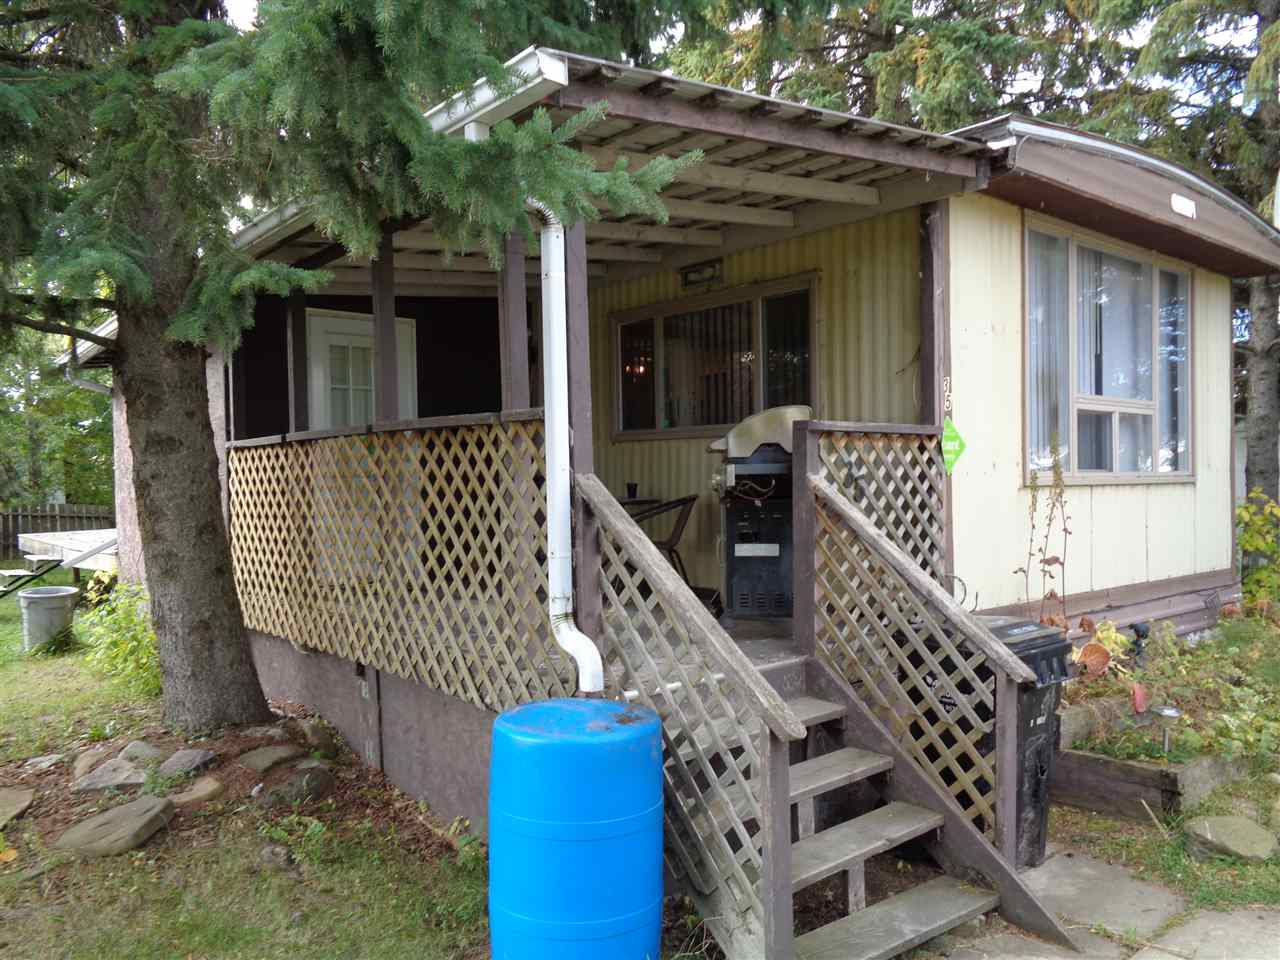 CHEAPER THAN RENT!! 14 x 64 1974 mobile home with 10 x 16 addition located in Westlocks Trailer Park. New windows in 2011, stainless steel appliances, 8 x 10 storage shed and deck. Located on corner lot with mature trees and yard space. Great opportunity for first time buyer!!